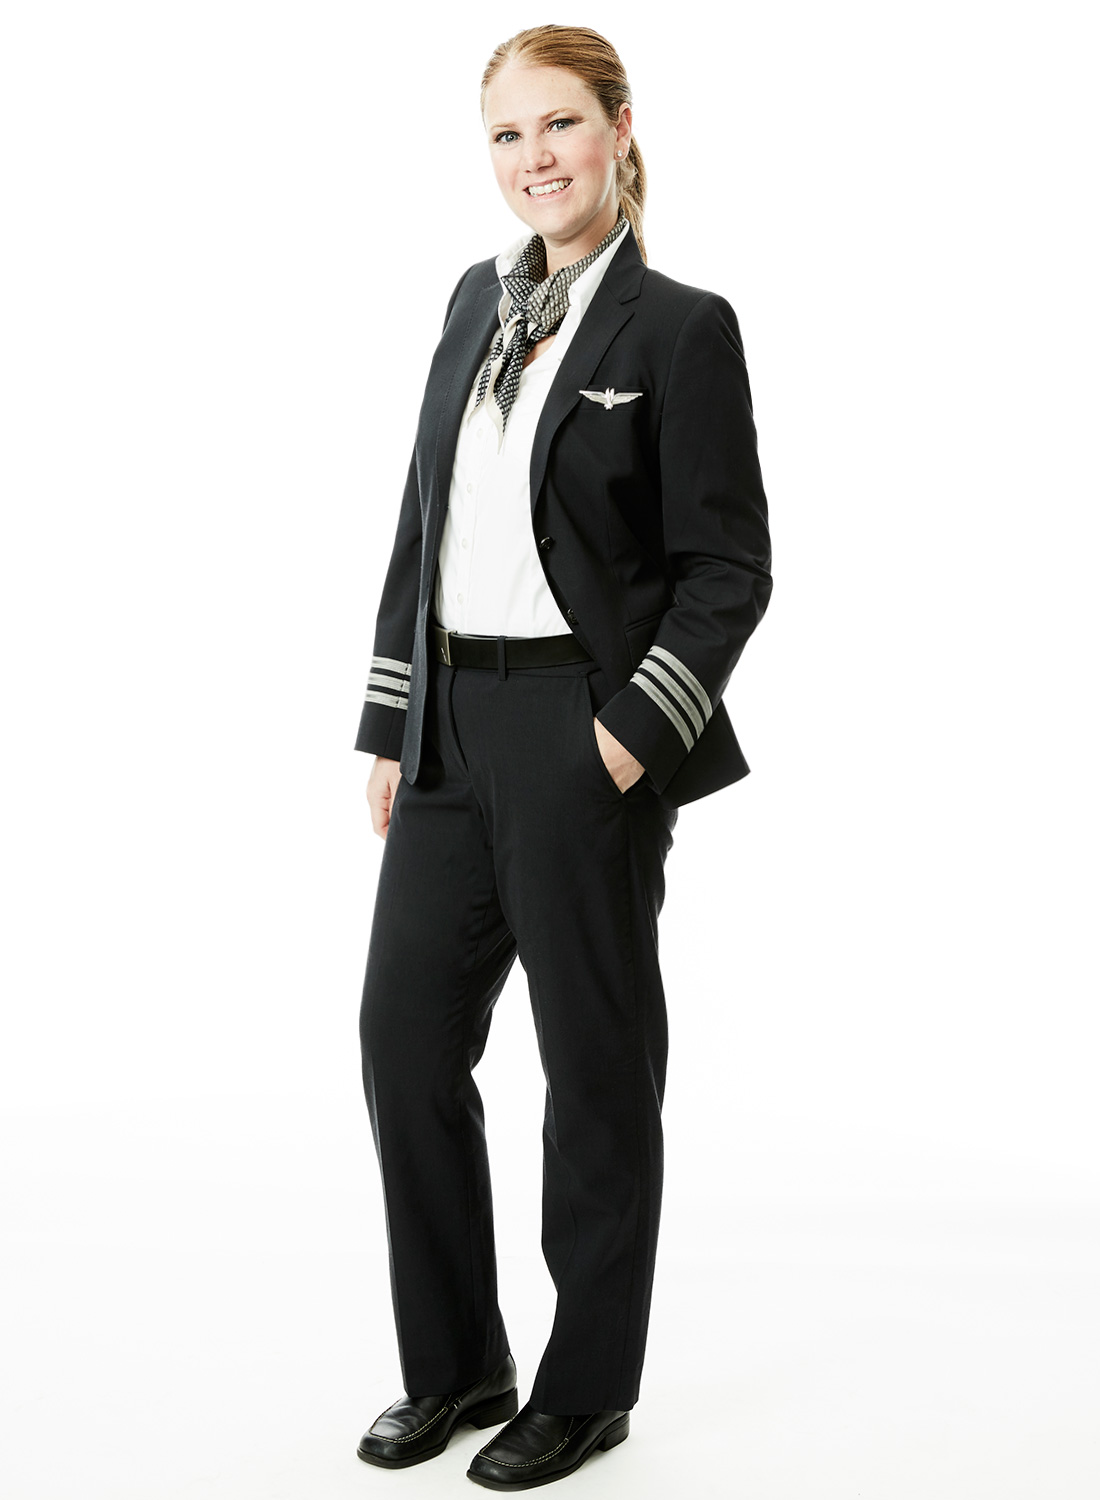 160920_AmericanAirlines_Portraits_By_BriJohnson_0011.jpg